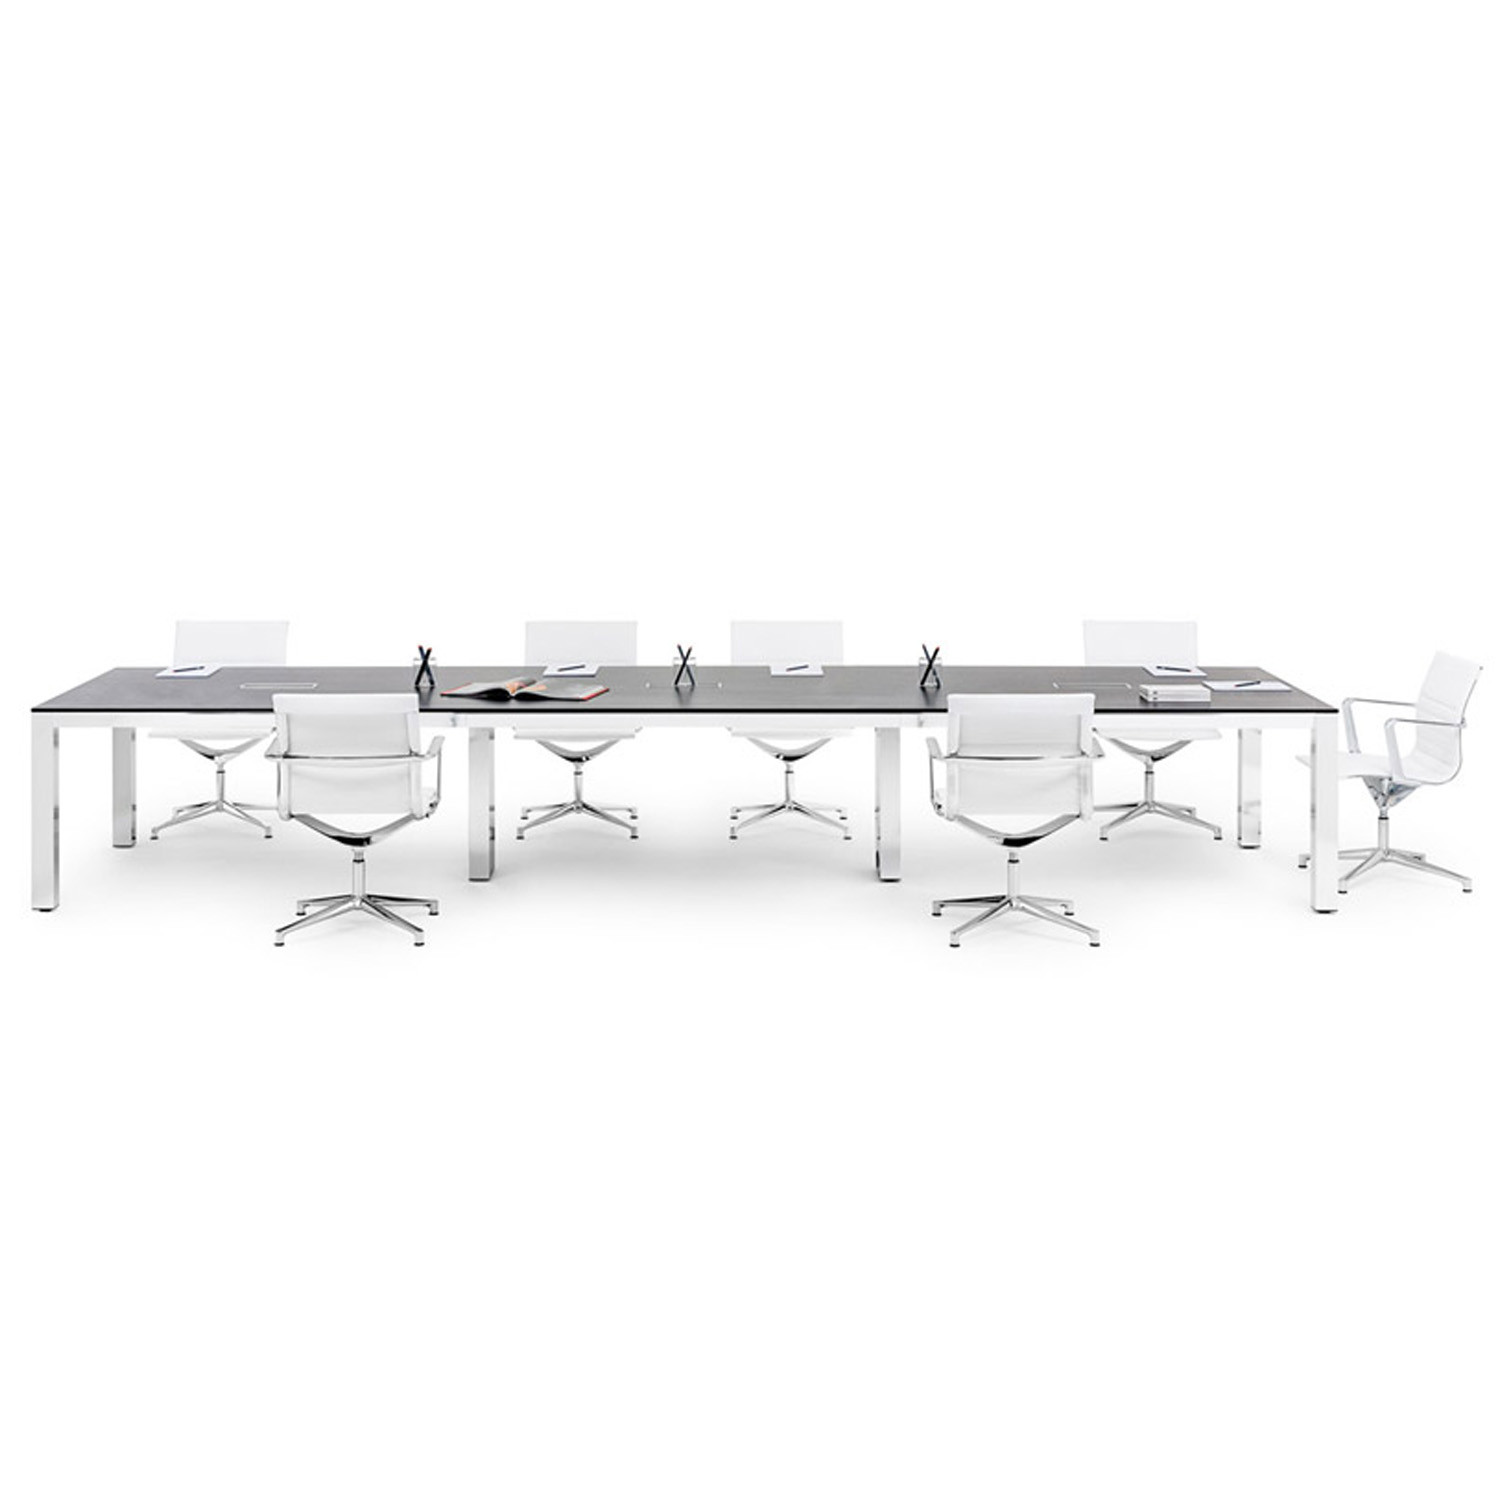 P80 Boardroom Tables